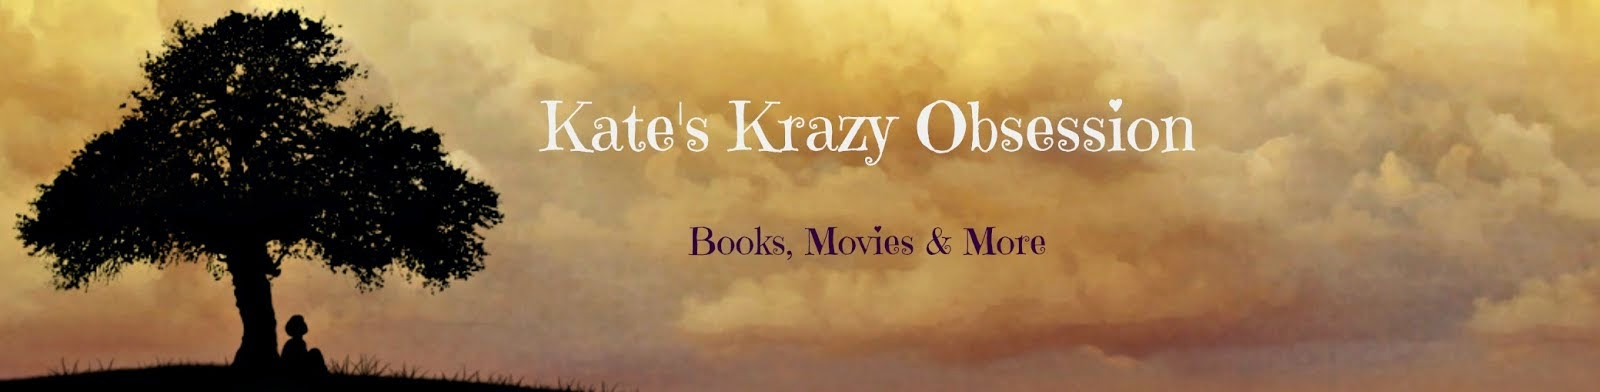 Kate's Krazy Obsession